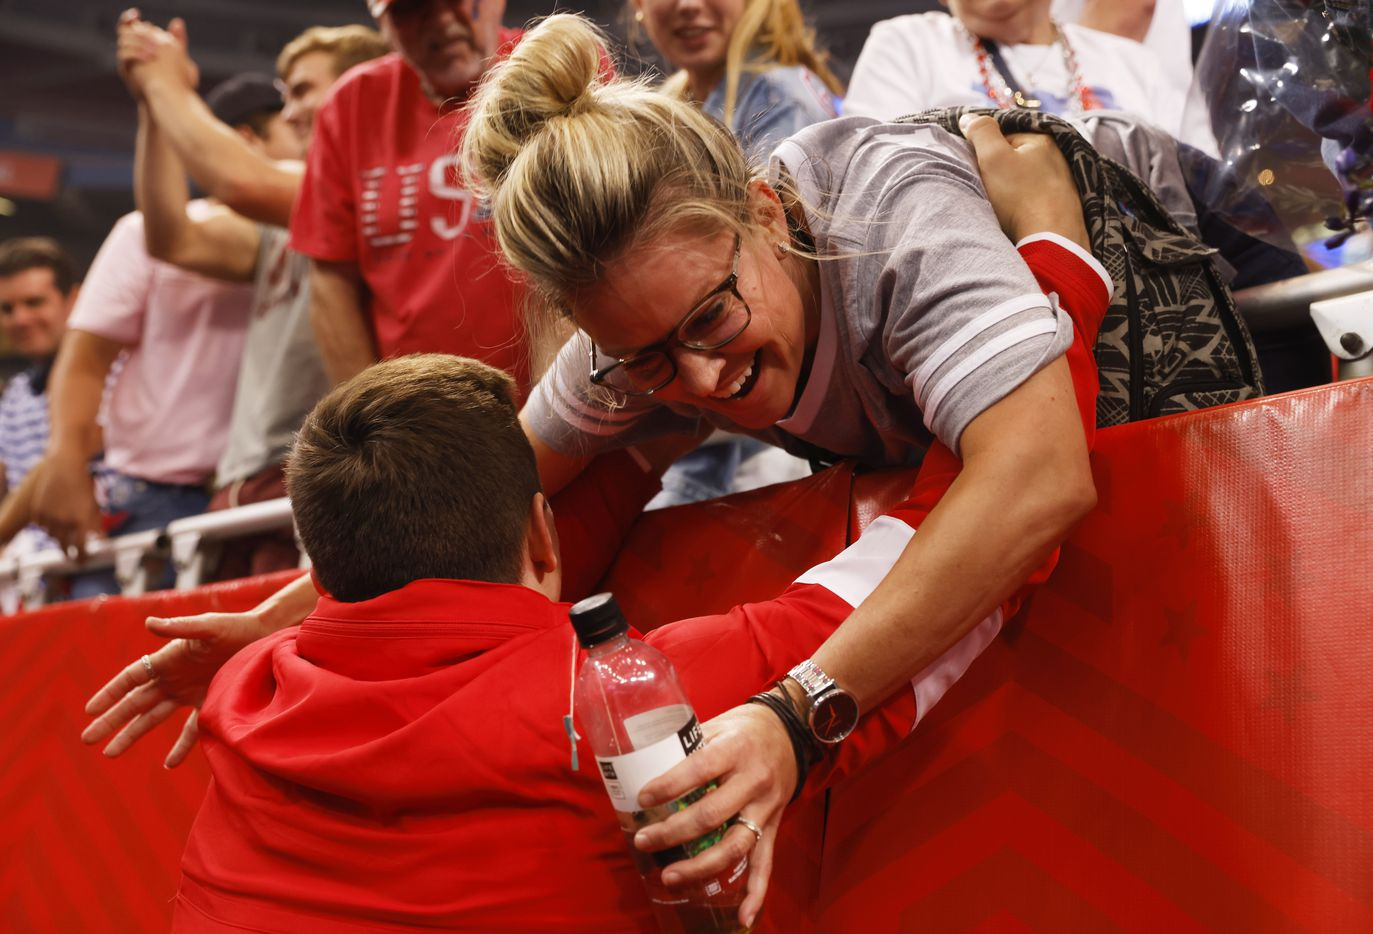 Brody Malone visits with family and friends after he was announced as a member of the U.S. mens olympic team during day 2 of the men's 2021 U.S. Olympic Trials at America's Center on Saturday, June 26, 2021 in St Louis, Missouri.(Vernon Bryant/The Dallas Morning News)